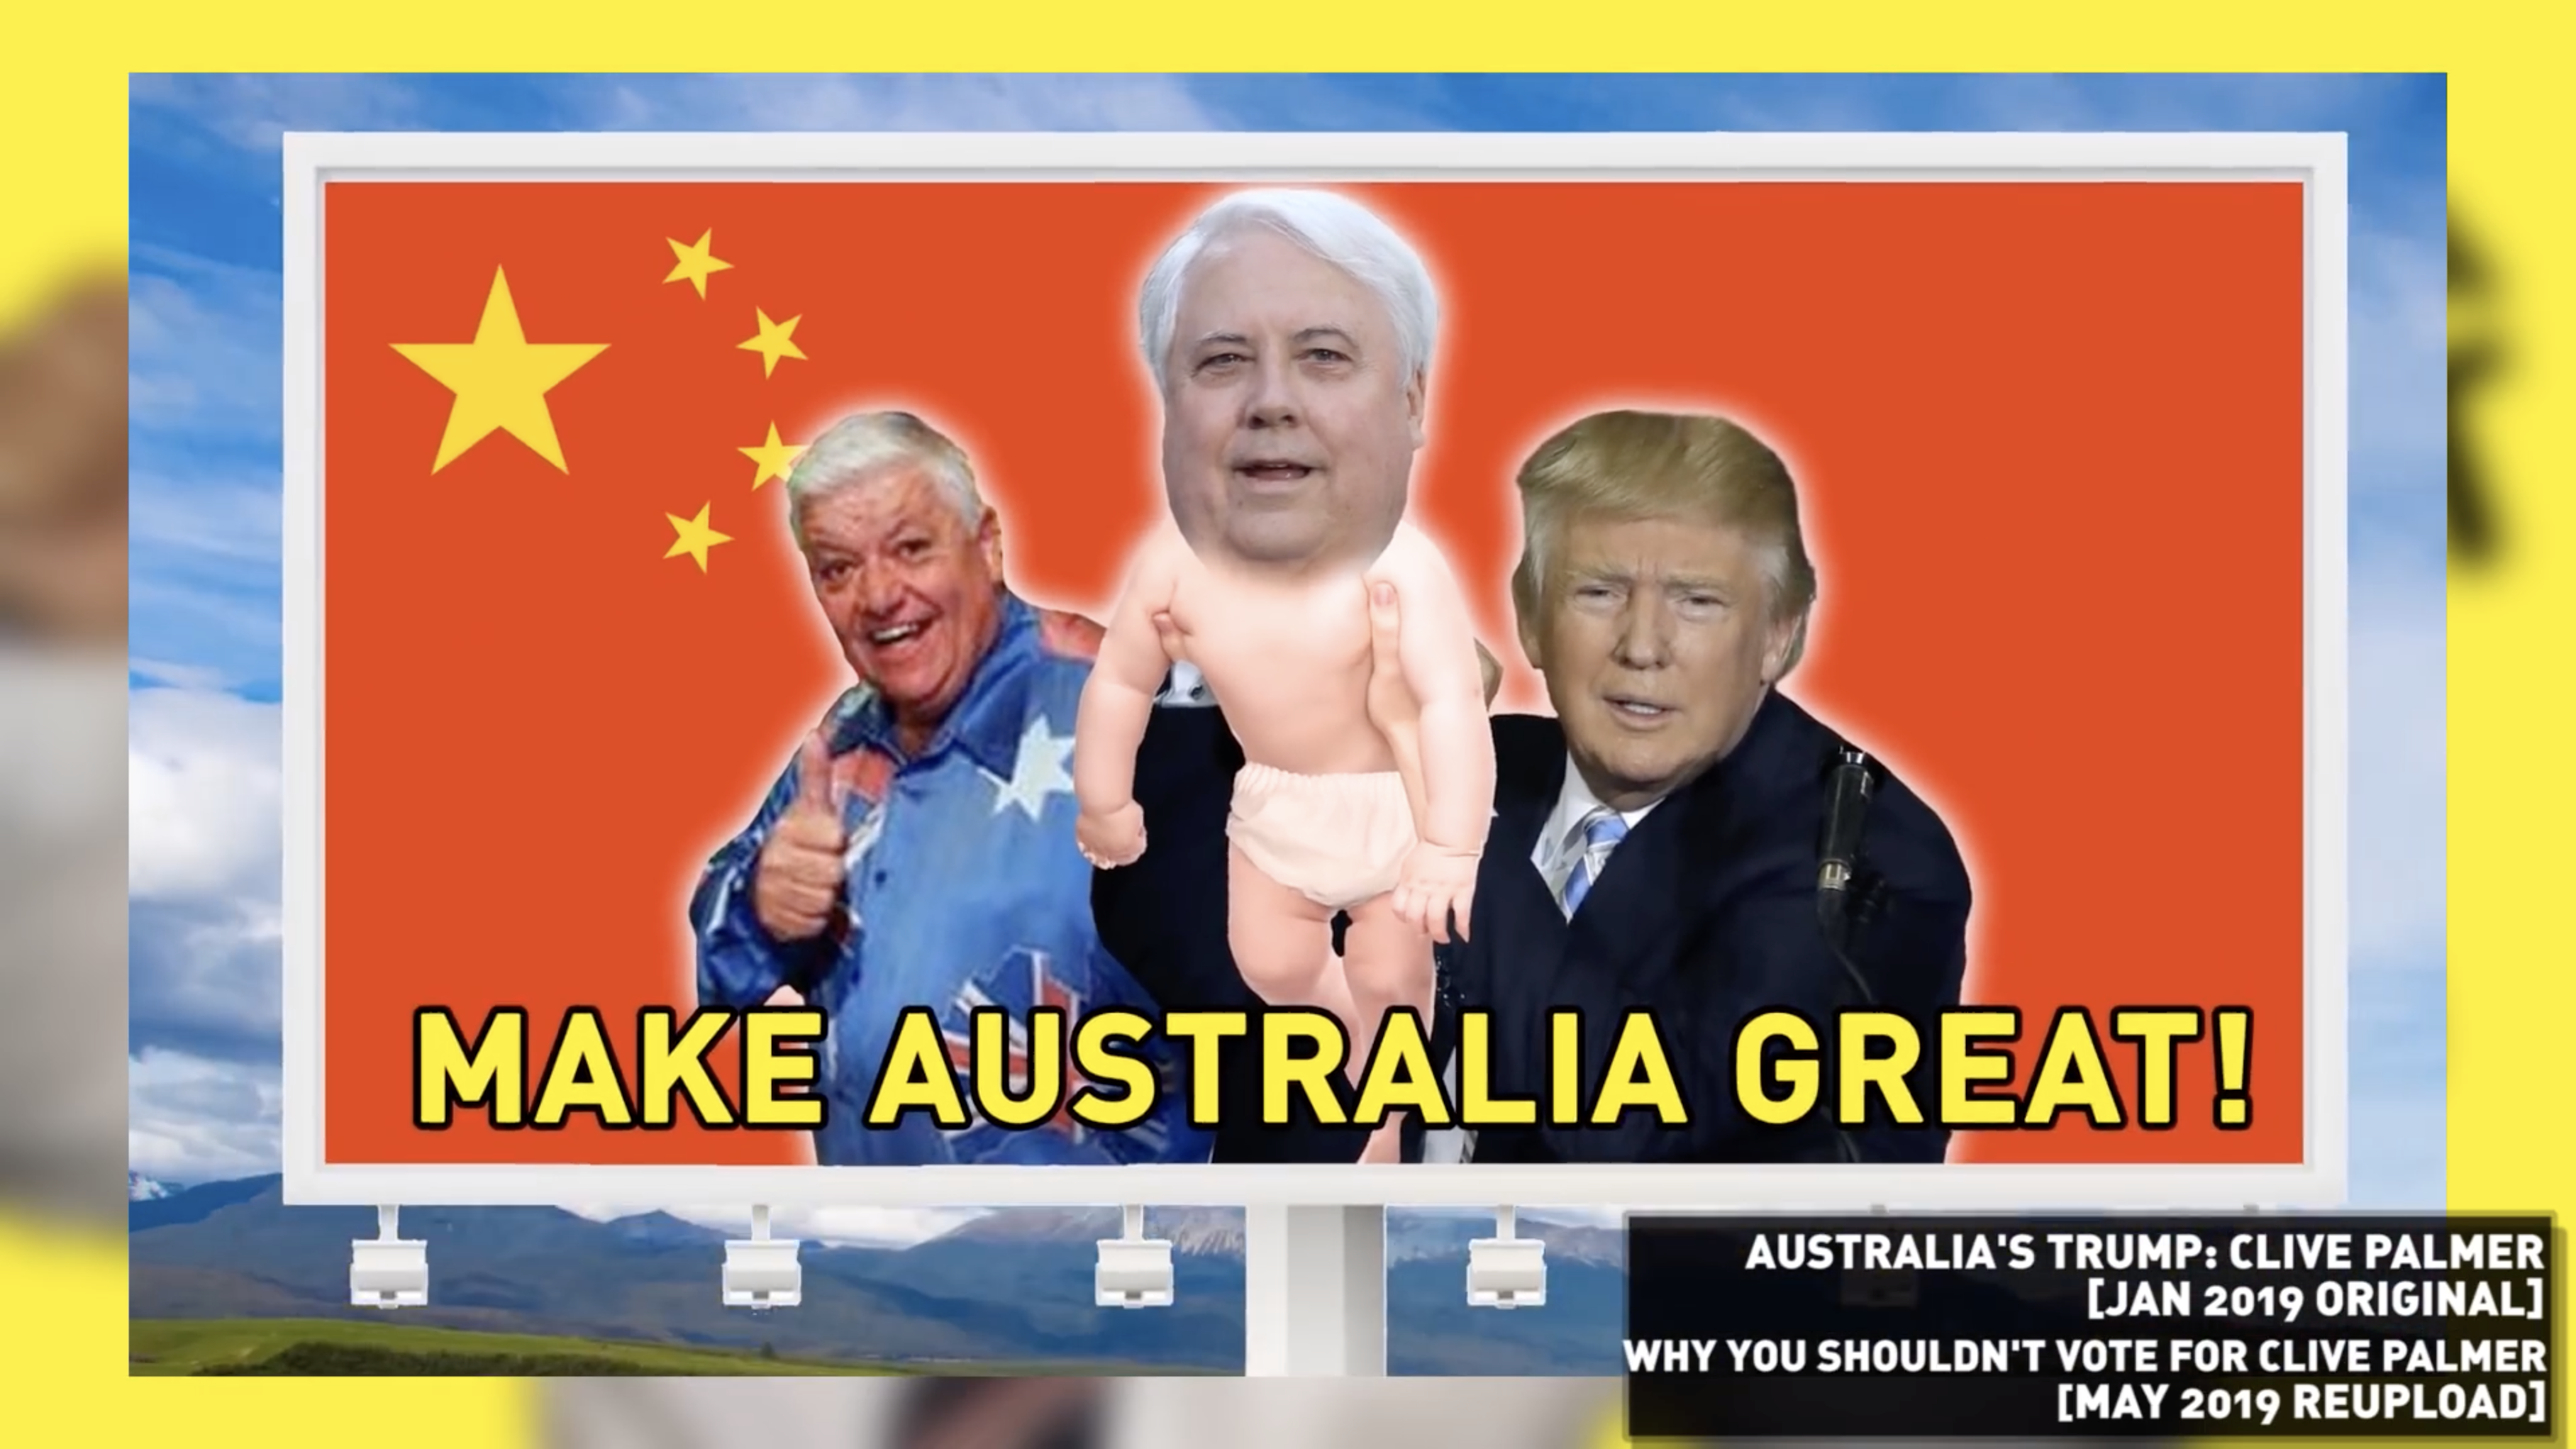 Clive Palmer Threatens To Sue Friendlyjordies For Calling Him 'Fatty McFuckhead' And Photoshopping Him As Trump's Baby